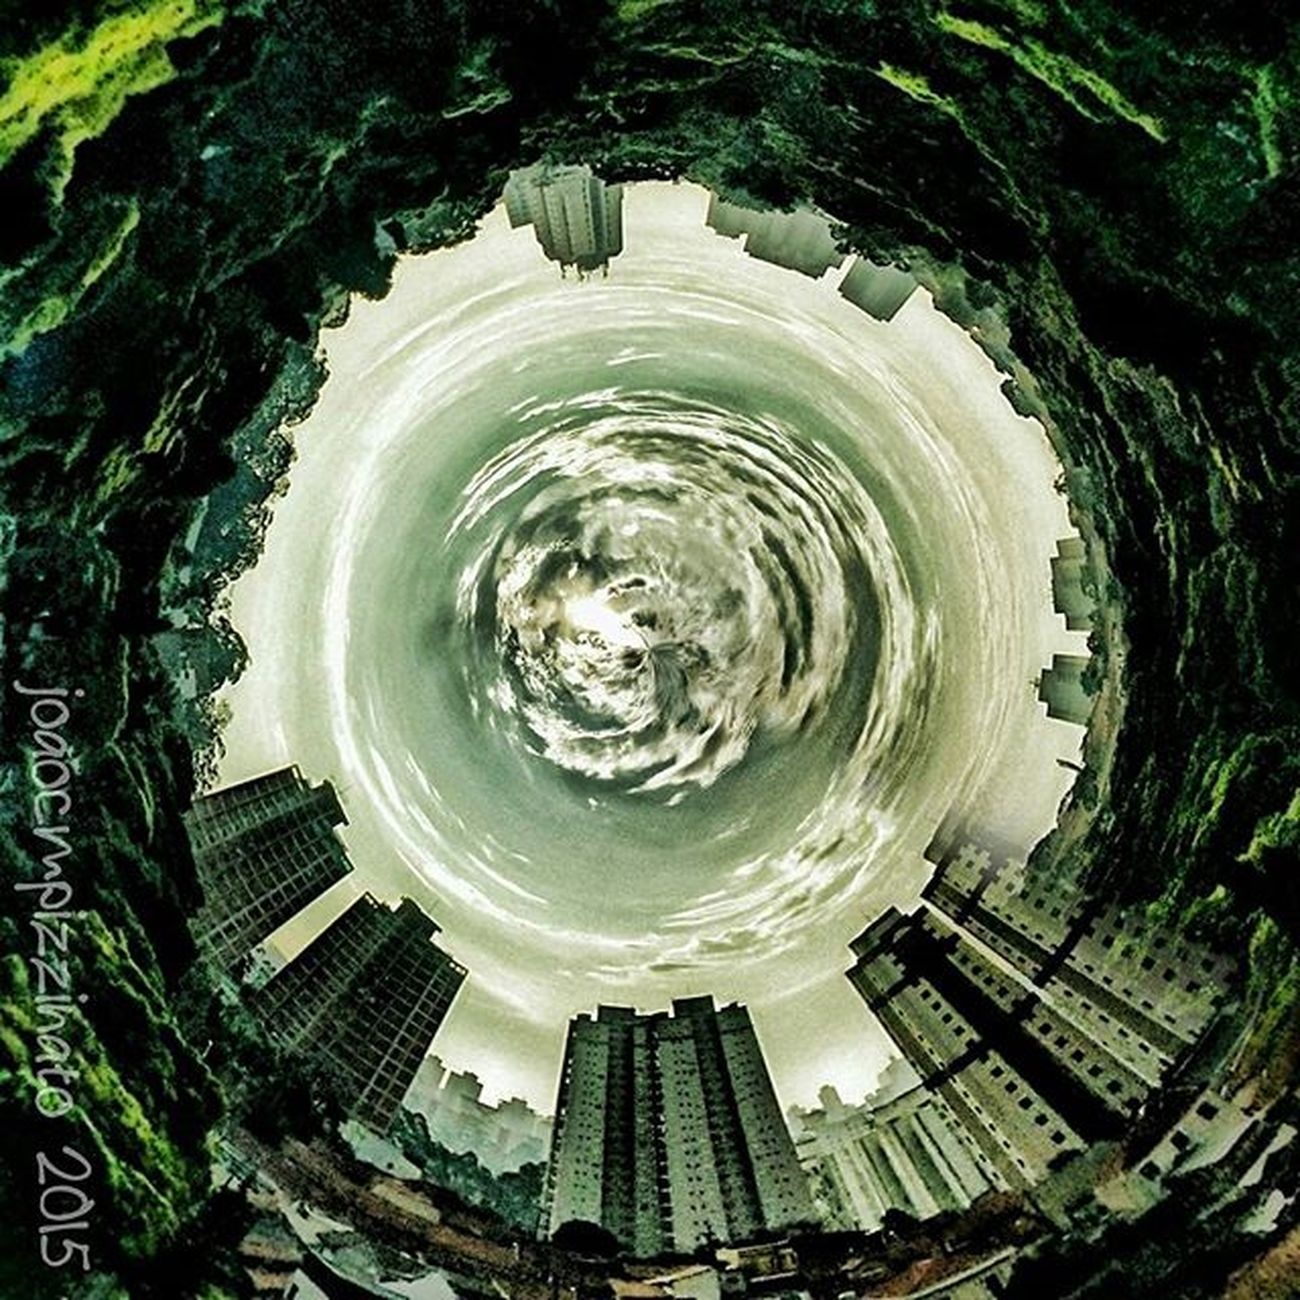 Strange World 🌍. World Neighborhood Planet Tinyplanetfx edited effect colors city zonasul saopaulo brasil photograph photography obscure_of_our_world